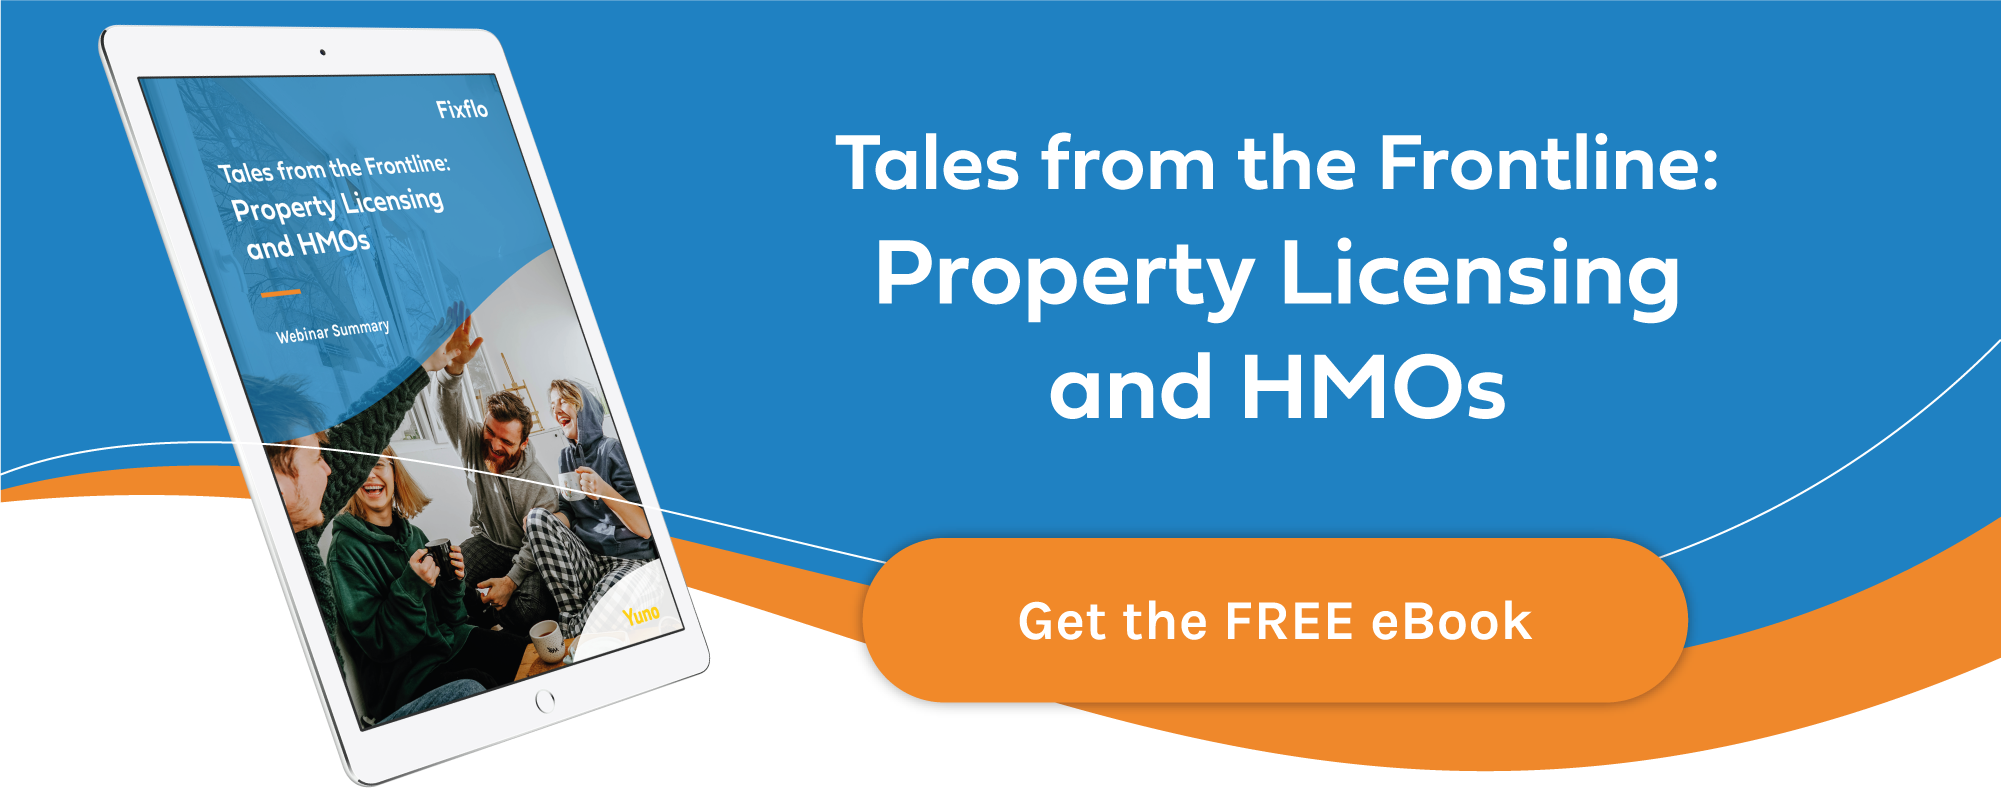 Fixflo eBook - Tales from the Frontline - Property Licensing and HMOs